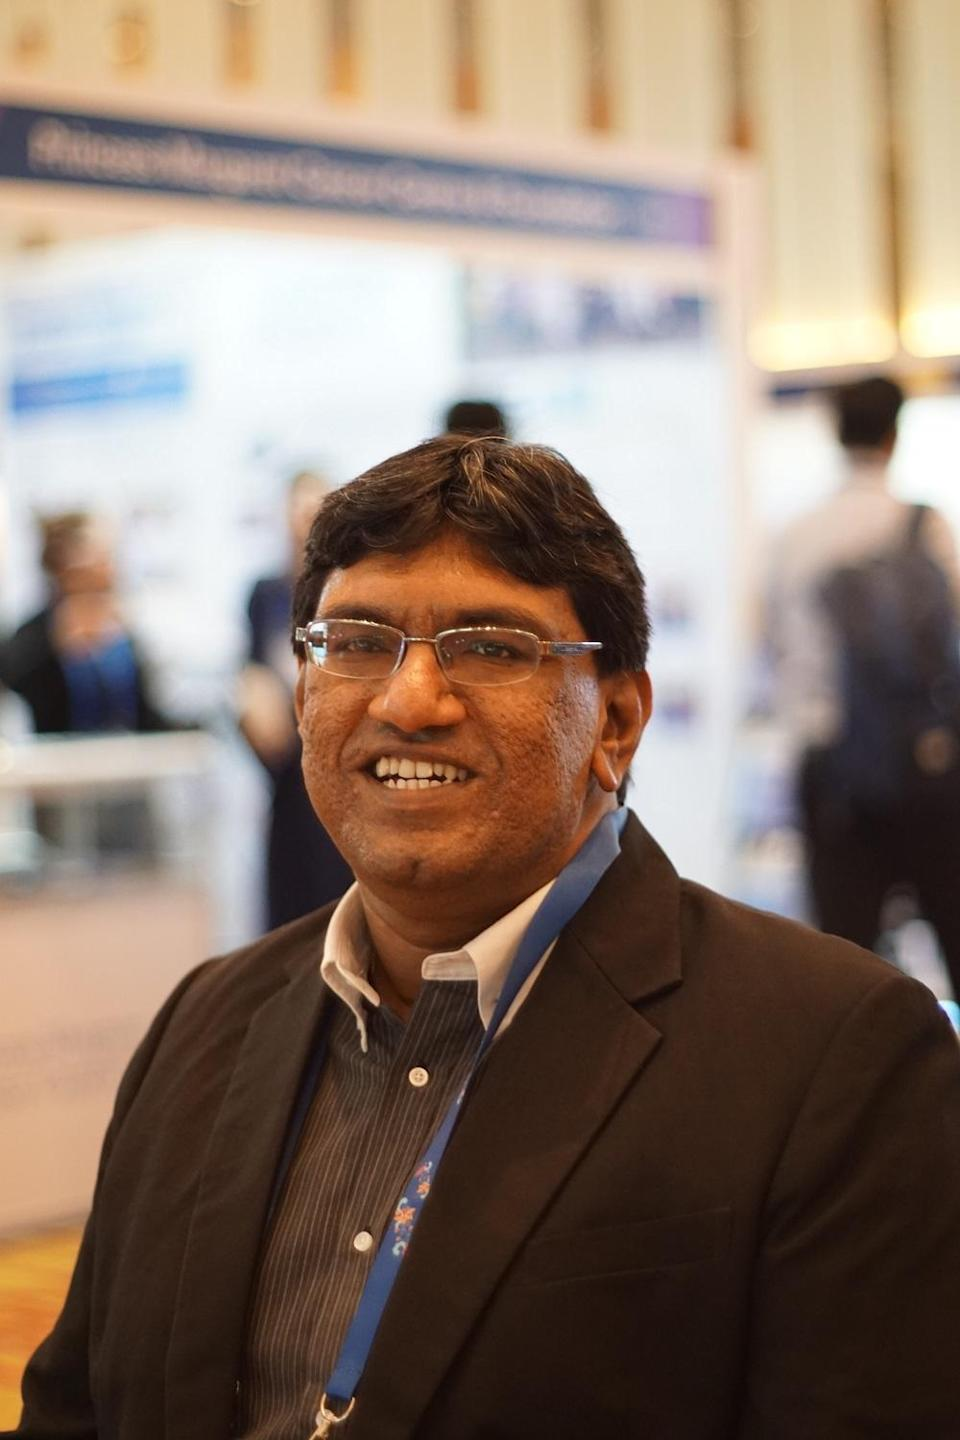 National Cancer Society of Malaysia's Managing Director, Dr. Murallitharan Munisamy. — Picture courtesy of National Cancer Society of Malaysia